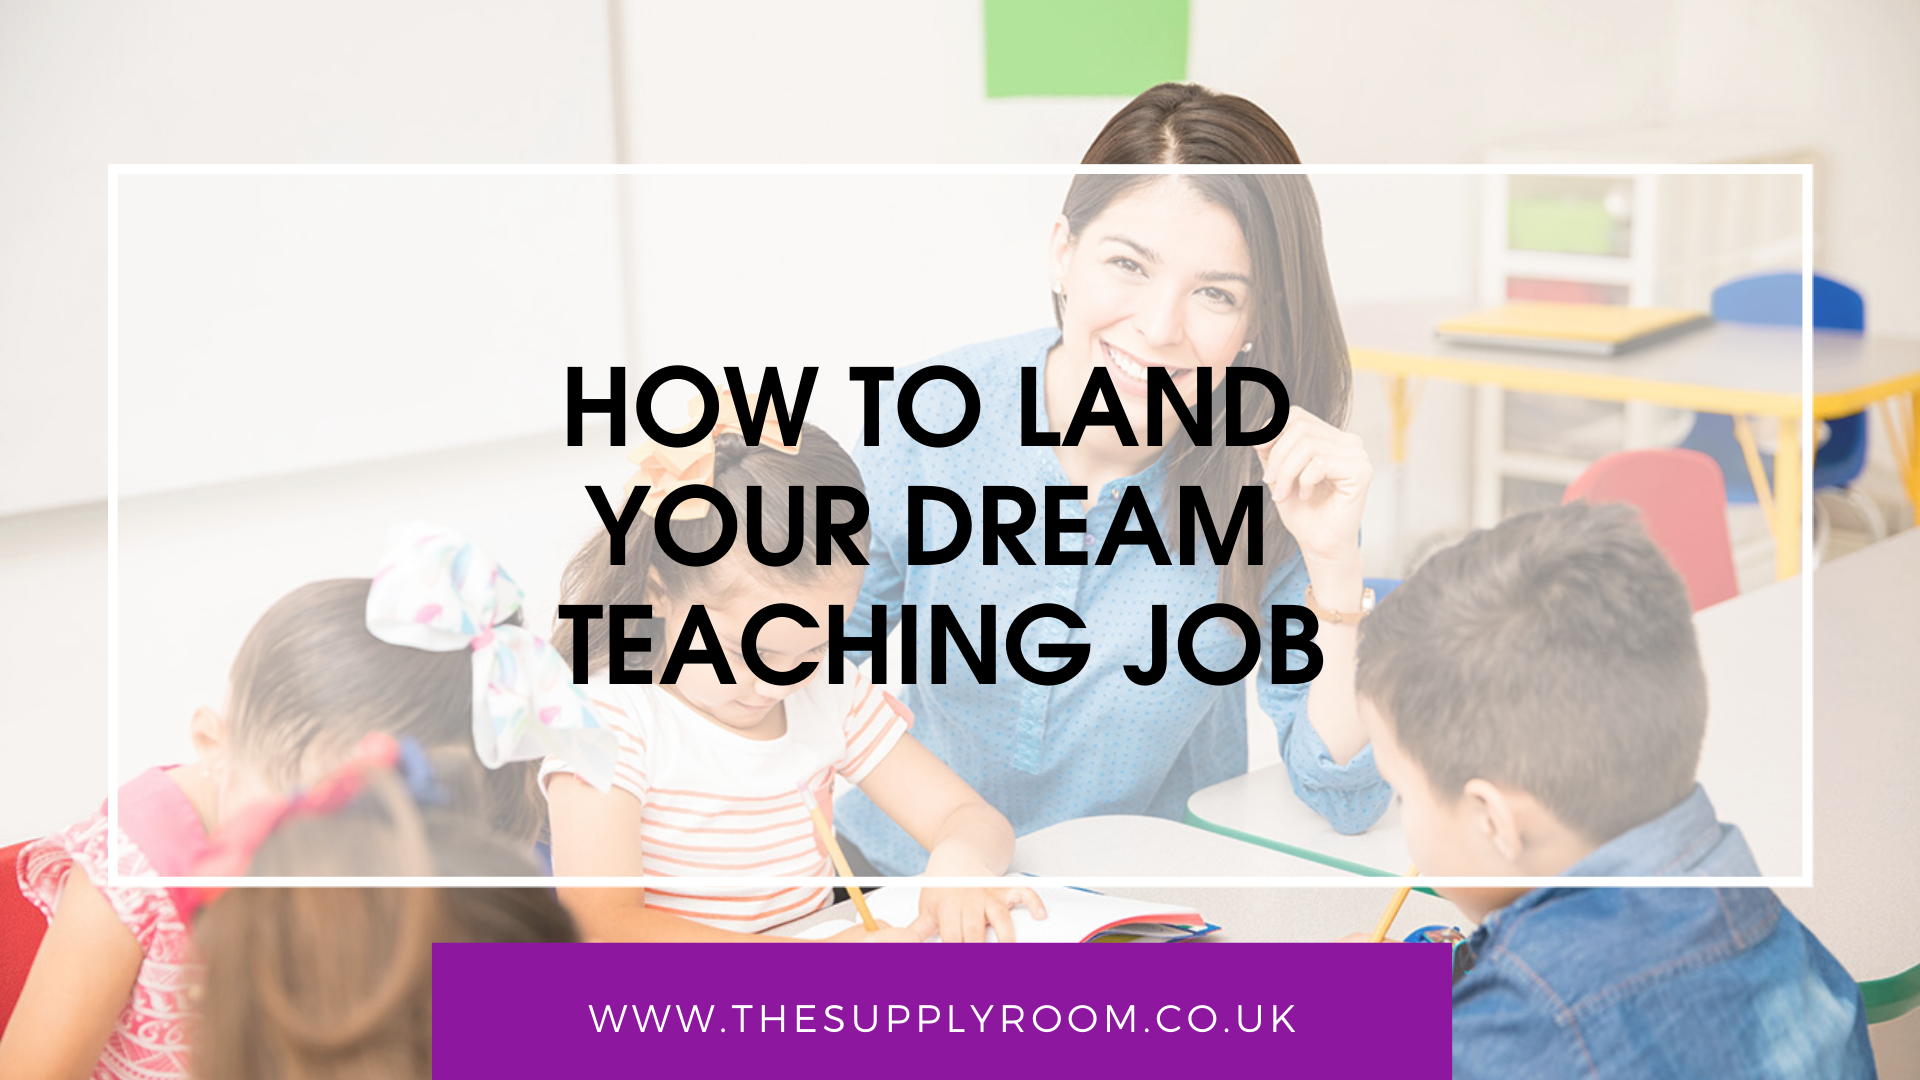 How to land your dream teaching job in the UK with The Supply Room